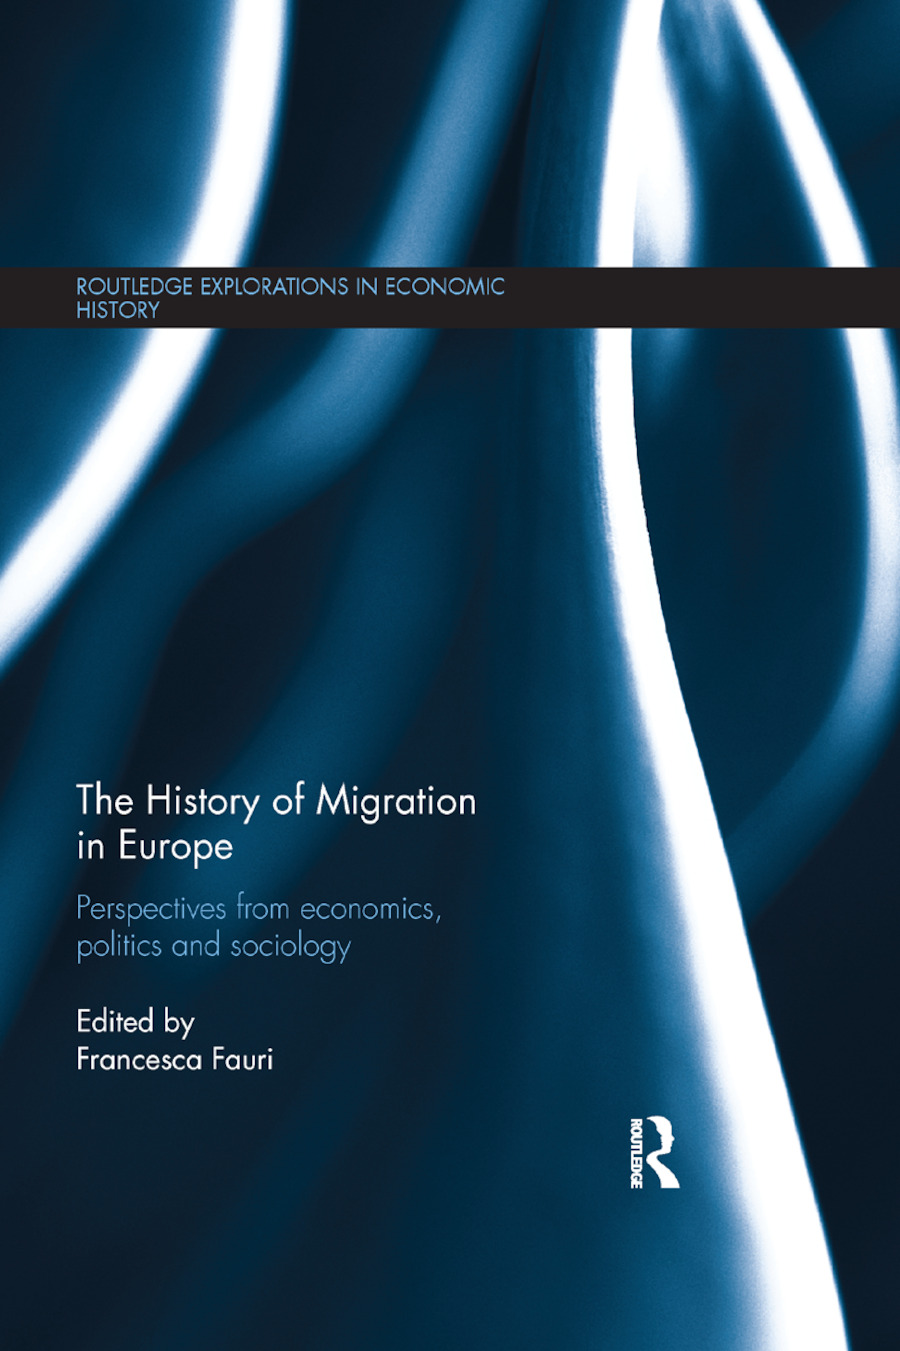 The History of Migration in Europe: Perspectives from Economics, Politics and Sociology book cover